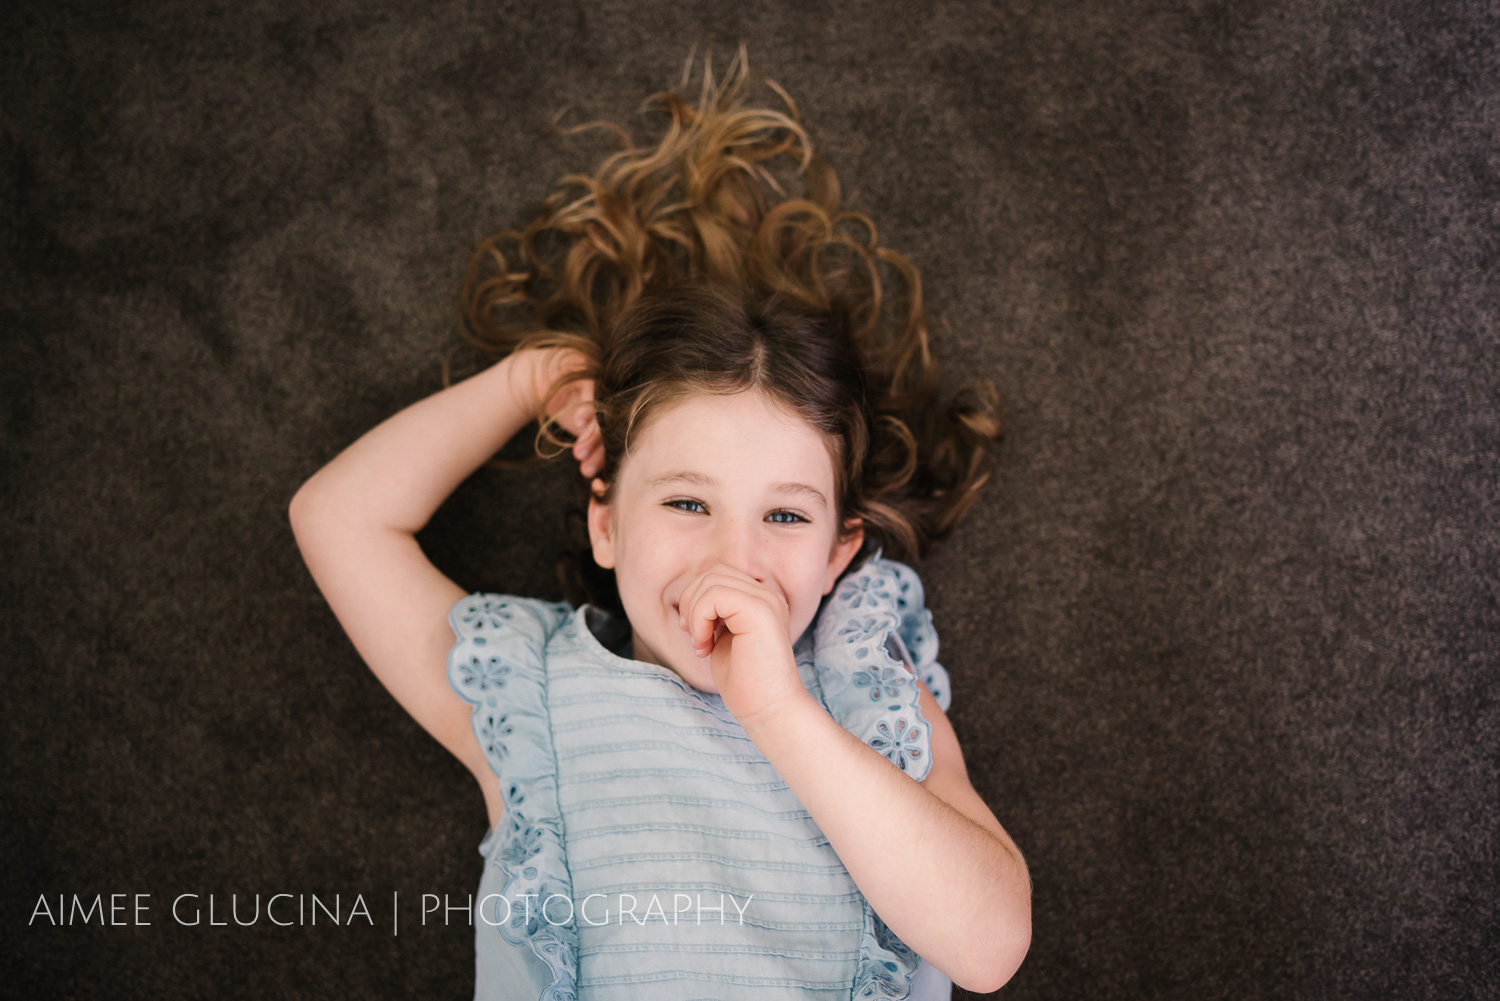 Baudinet Family Session by Aimee Glucina Photography-23.jpg